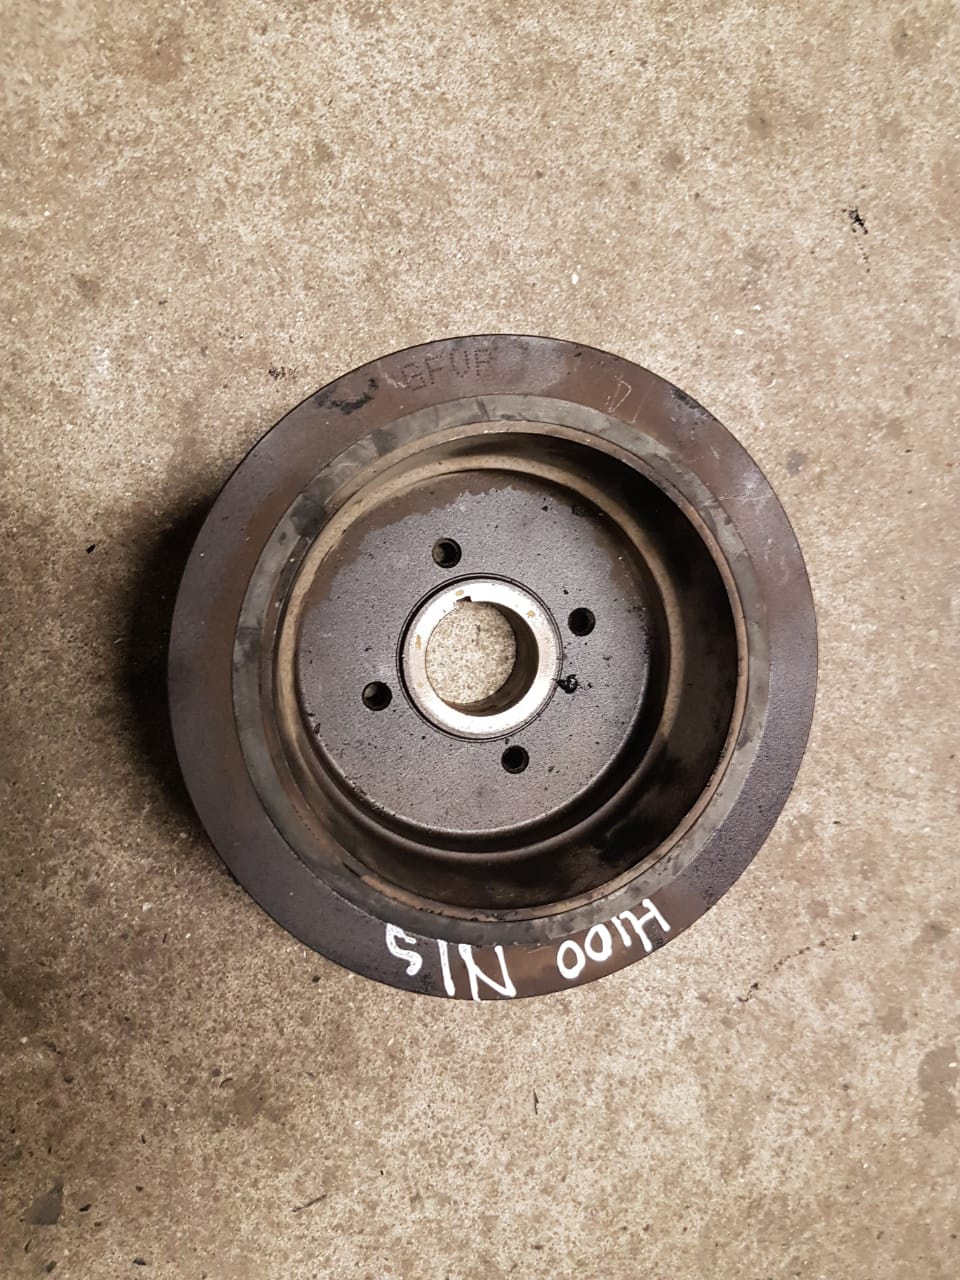 Hyundai H100 crank pully for sale.